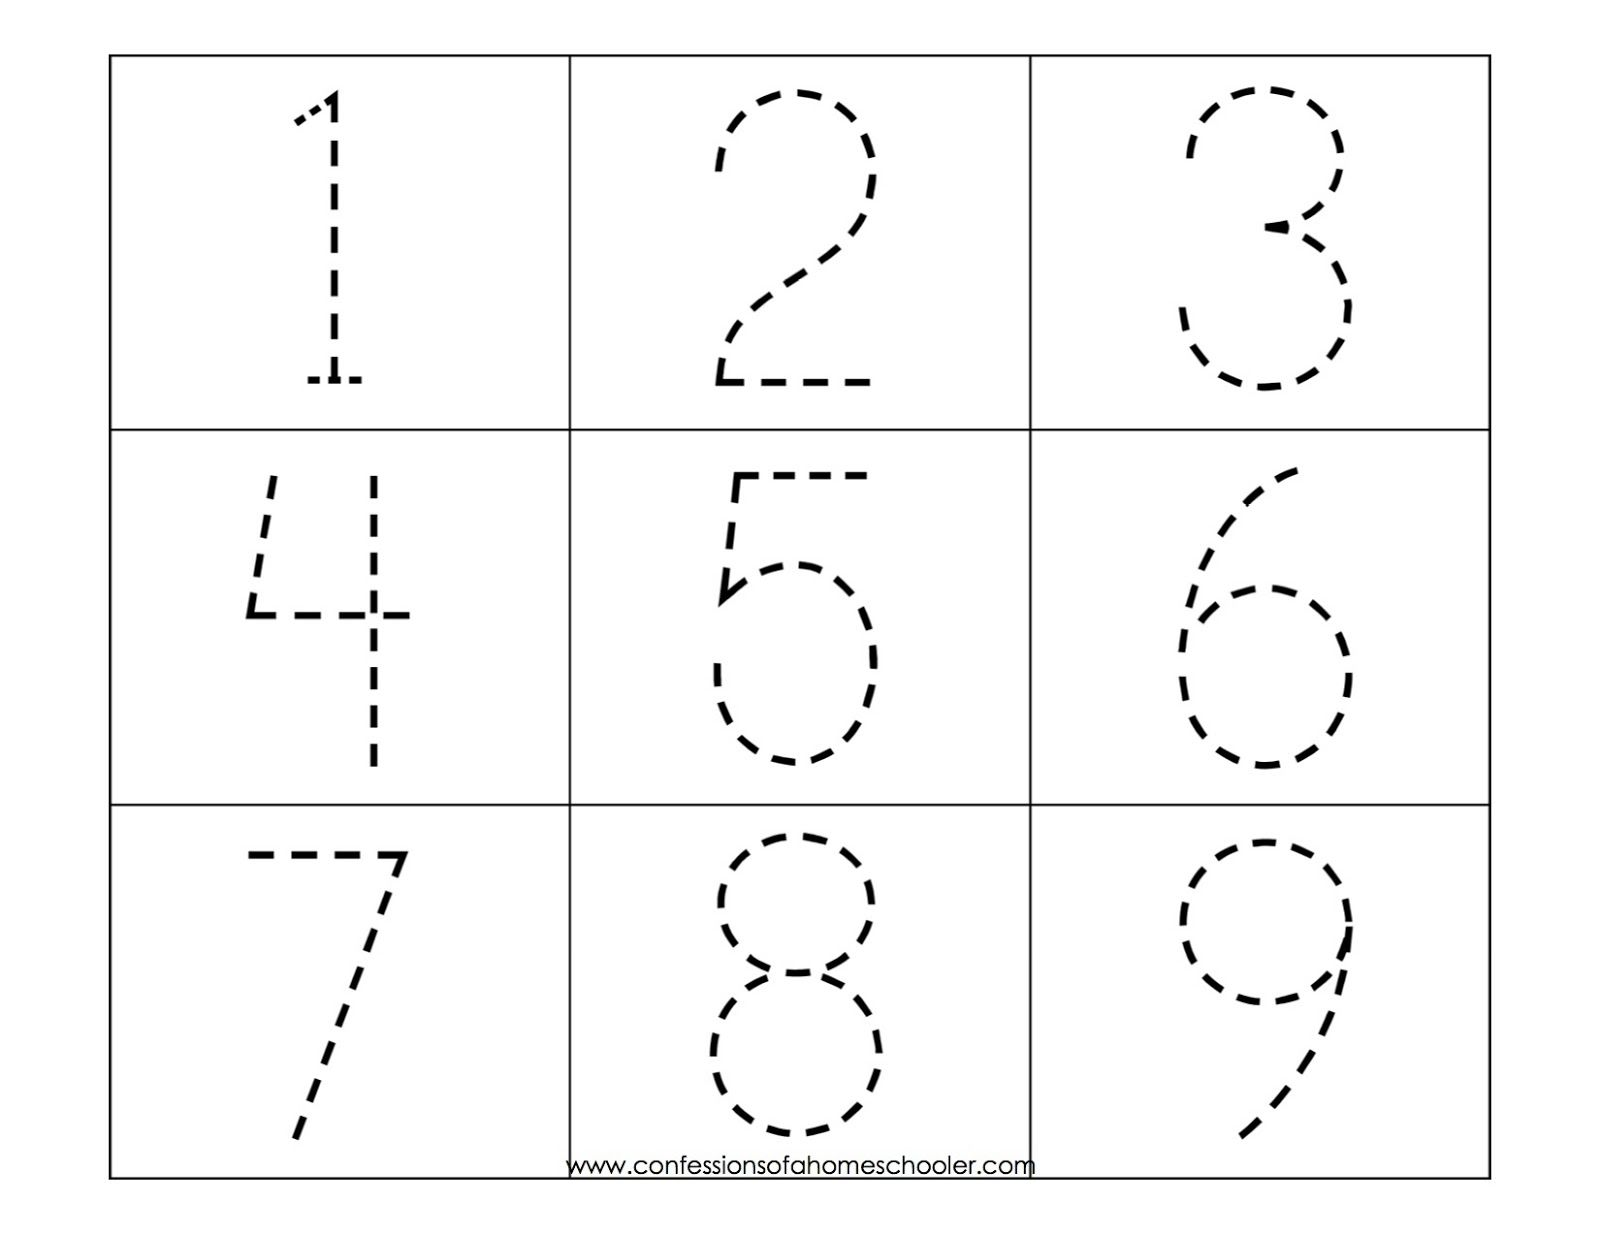 Worksheets Number Tracing Worksheets tracing numbers 1 10 googlom matematika pinterest check out these new for kg worksheets with some number help and guide your kids to